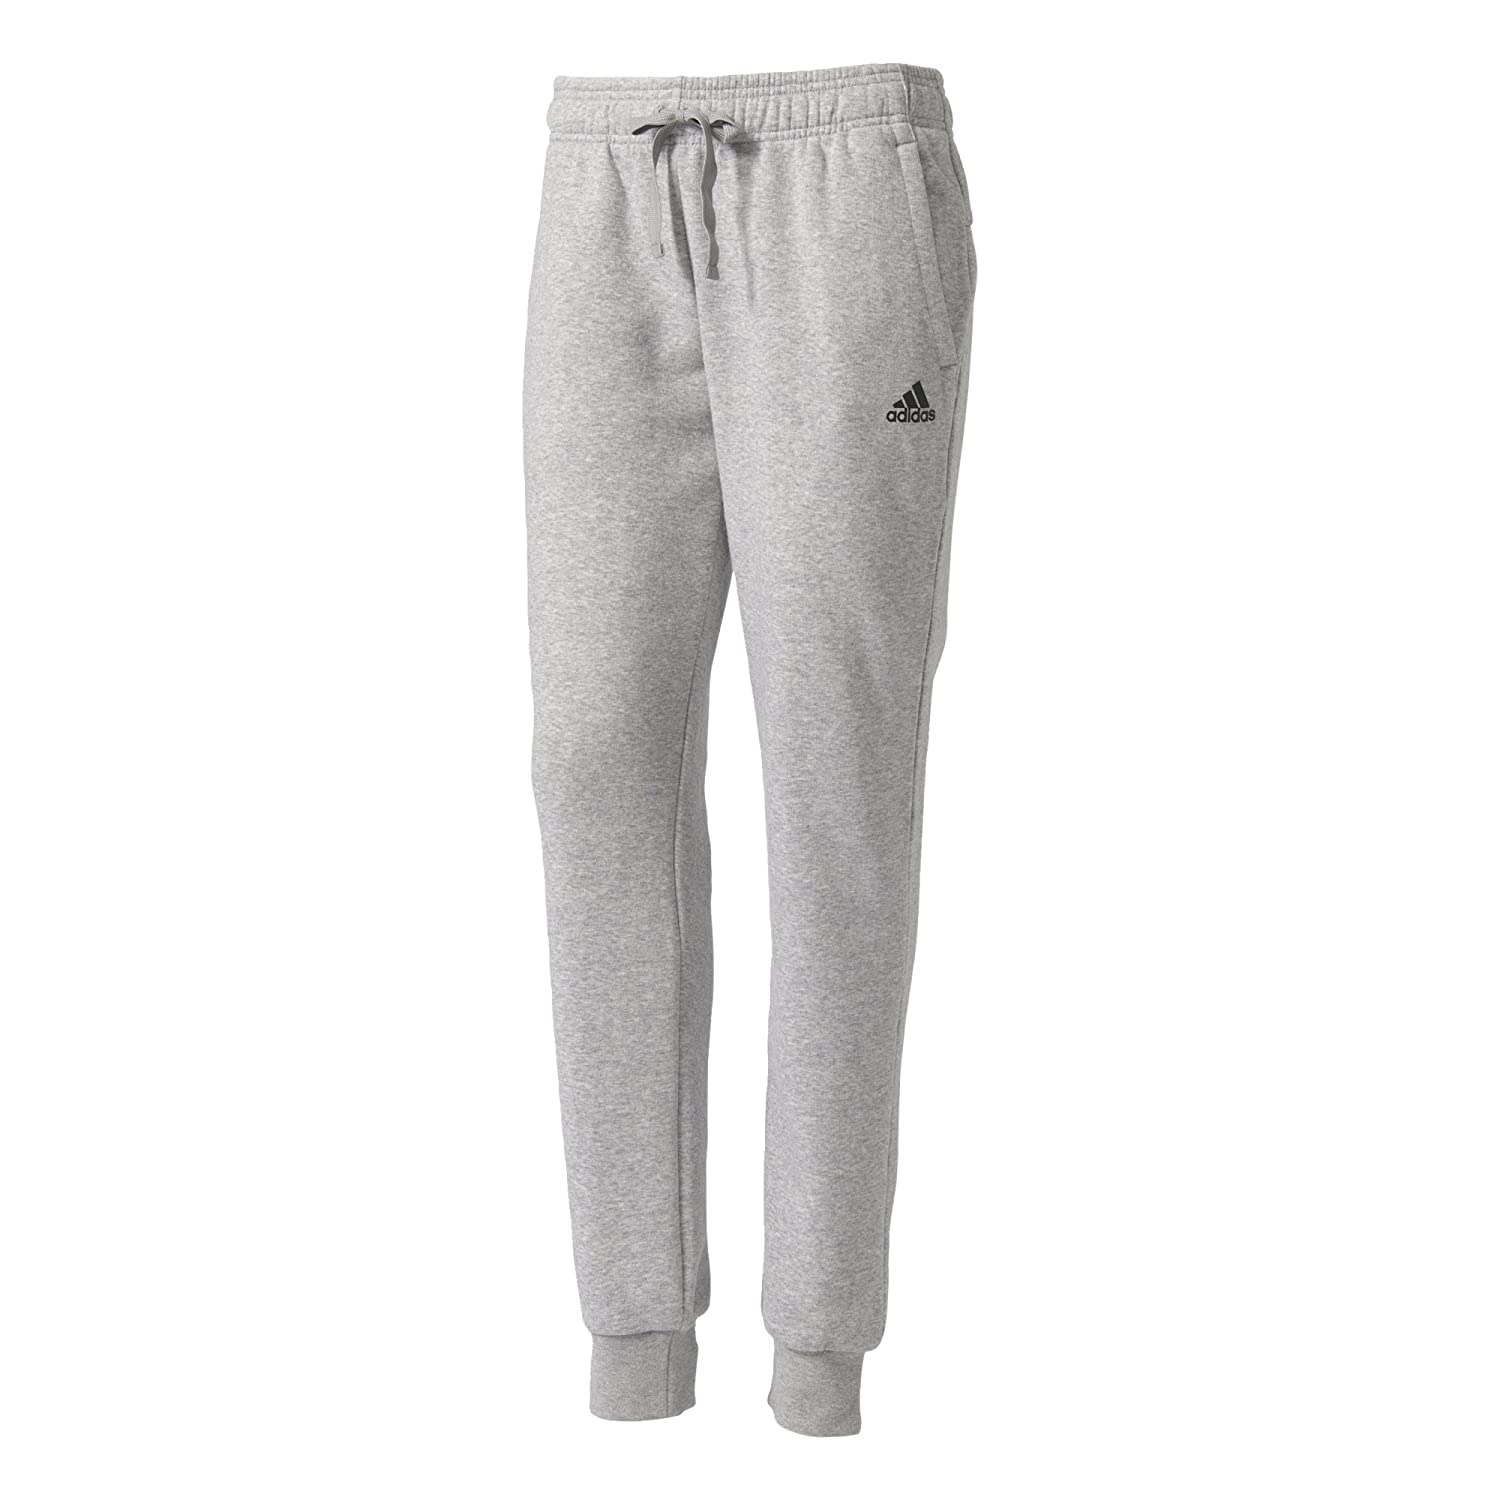 adidas Women's Essentials Solid Trousers adidas (ADIEY) S97160